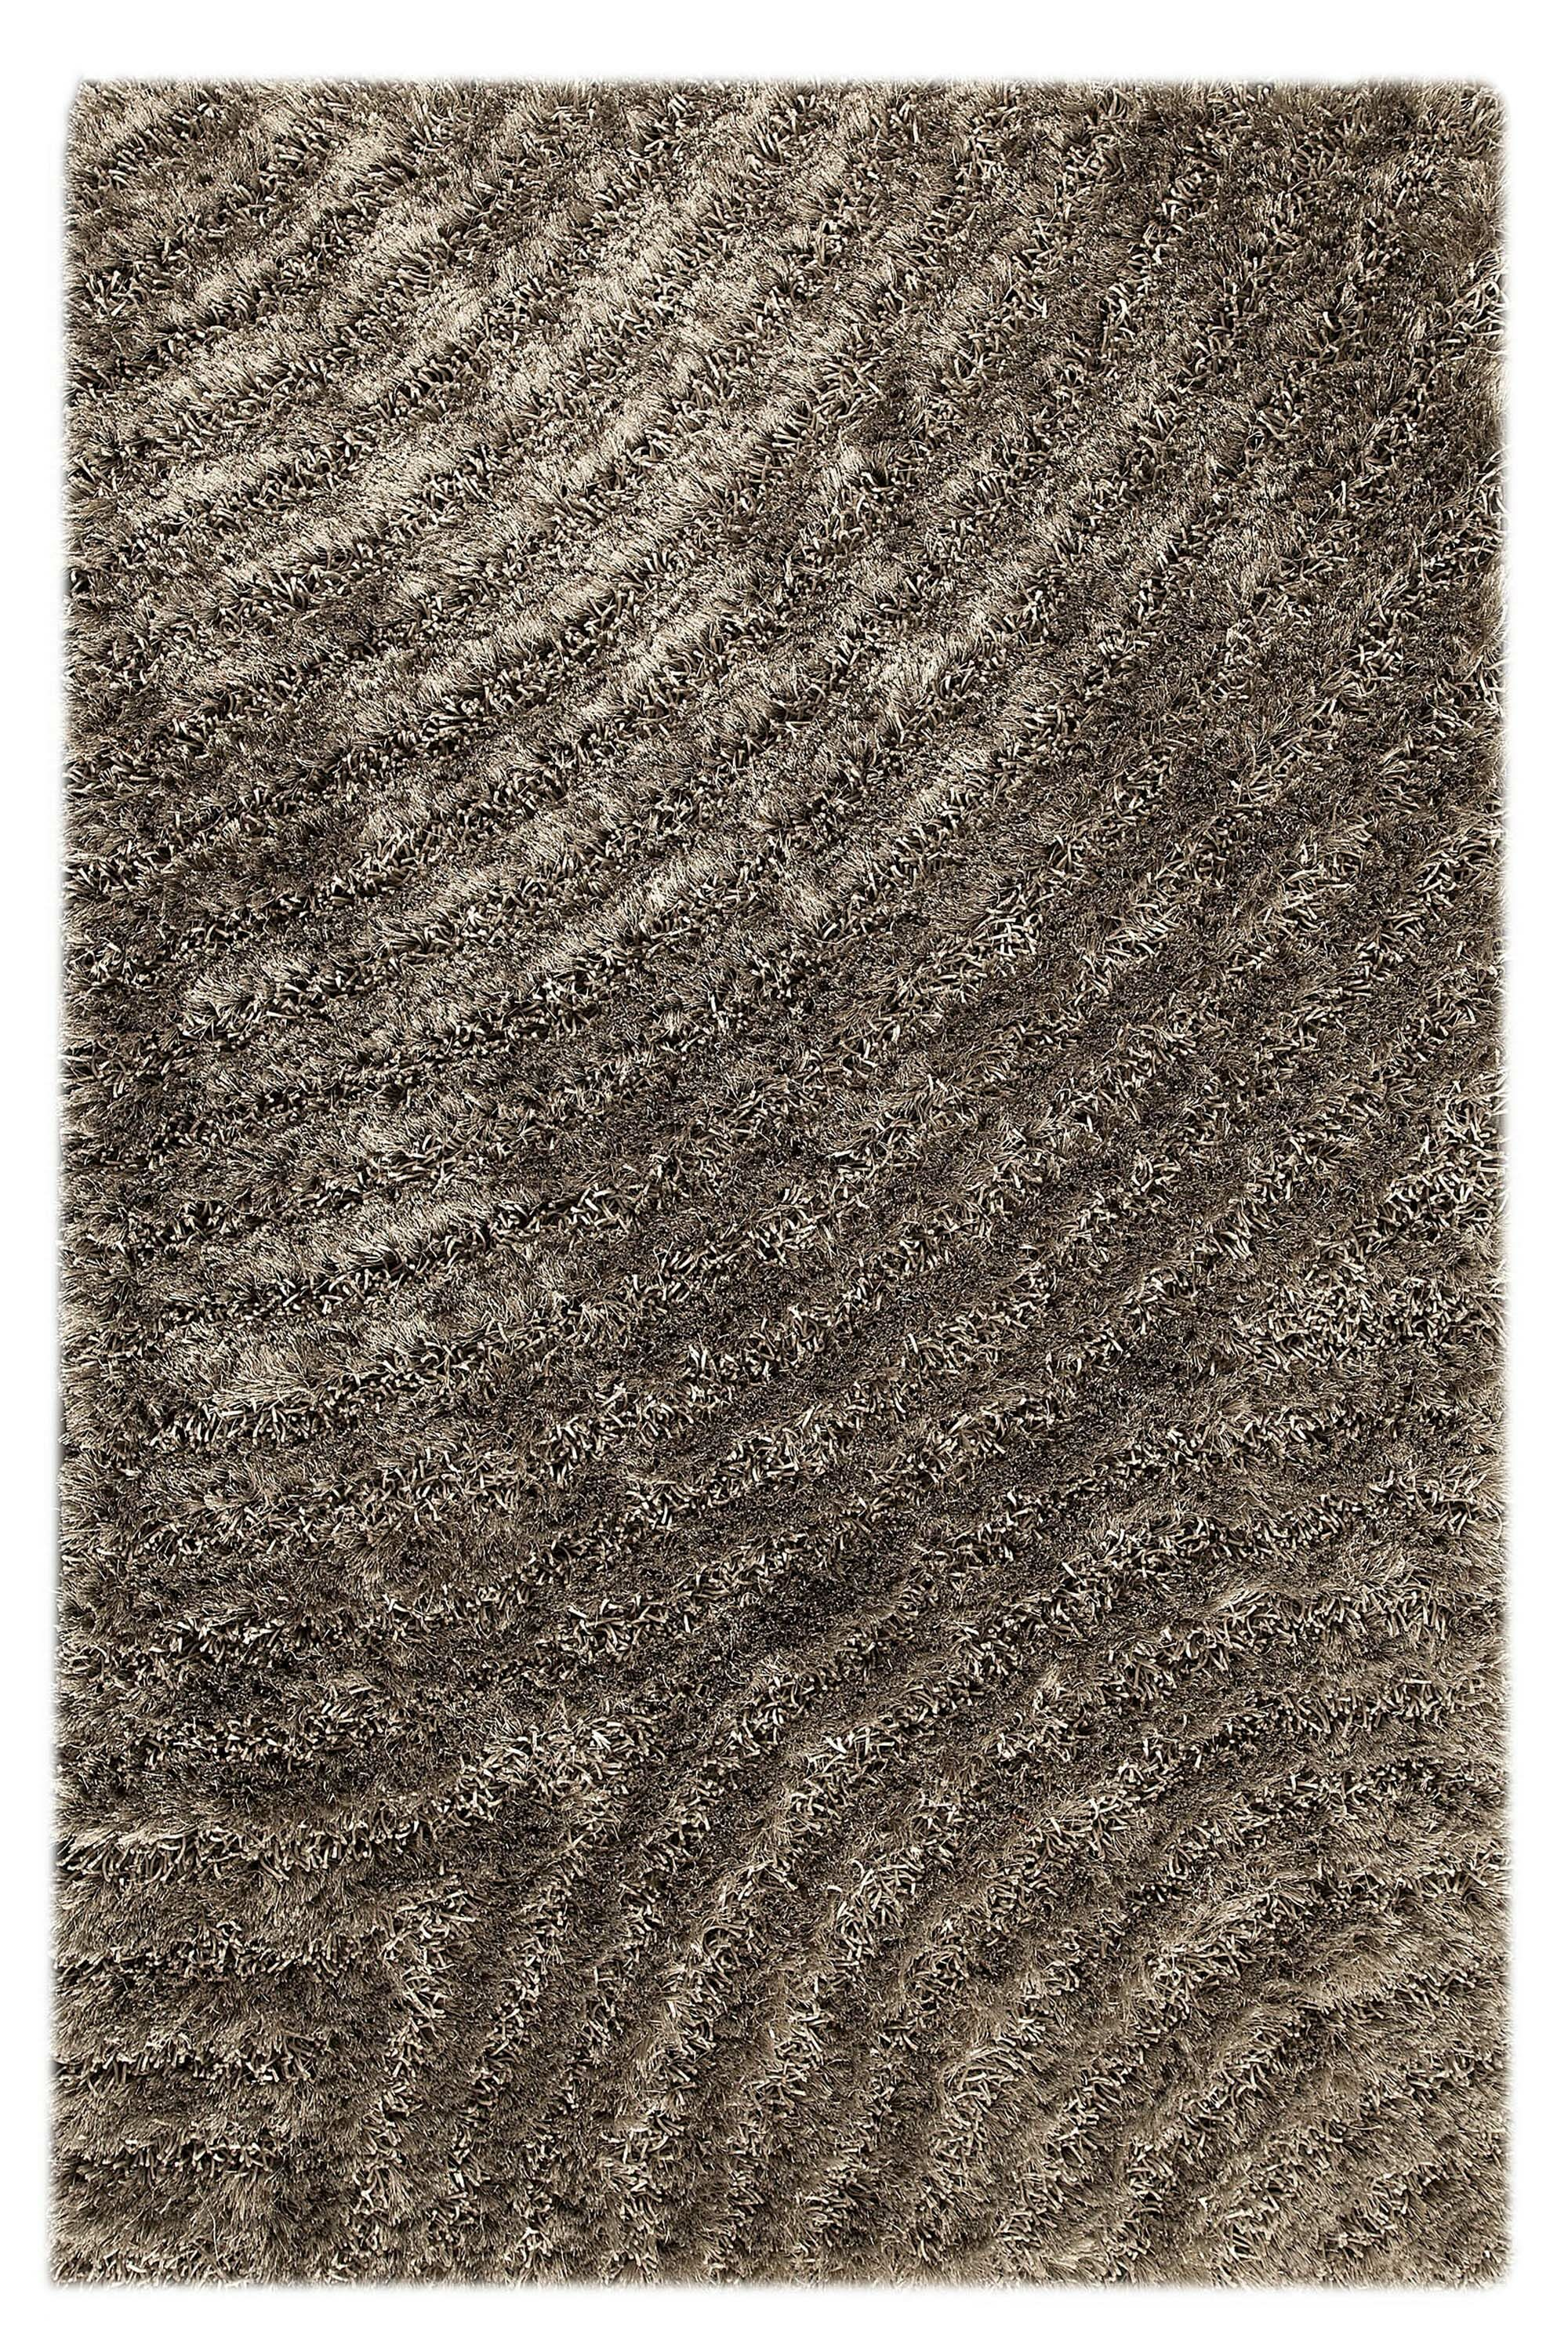 Lang Grey Area Rug Rug Size: Rectangle 7'10